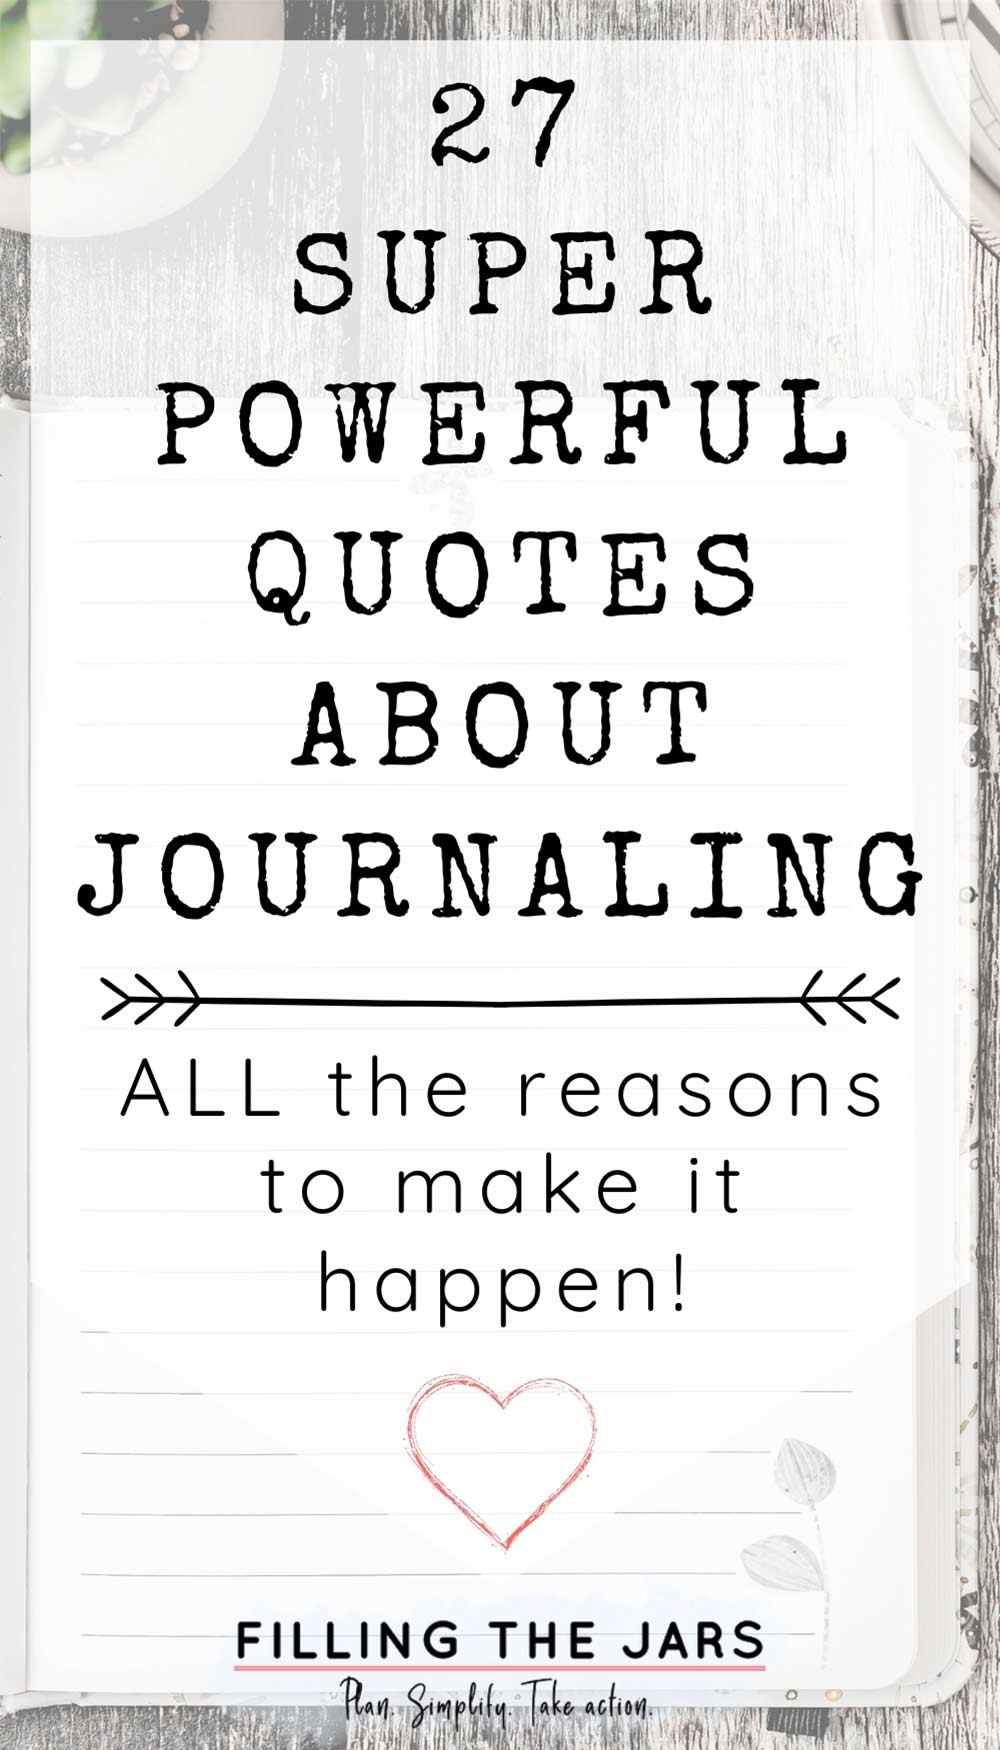 Text powerful quotes about journaling on white background over image of open lined journal on rustic wood table.